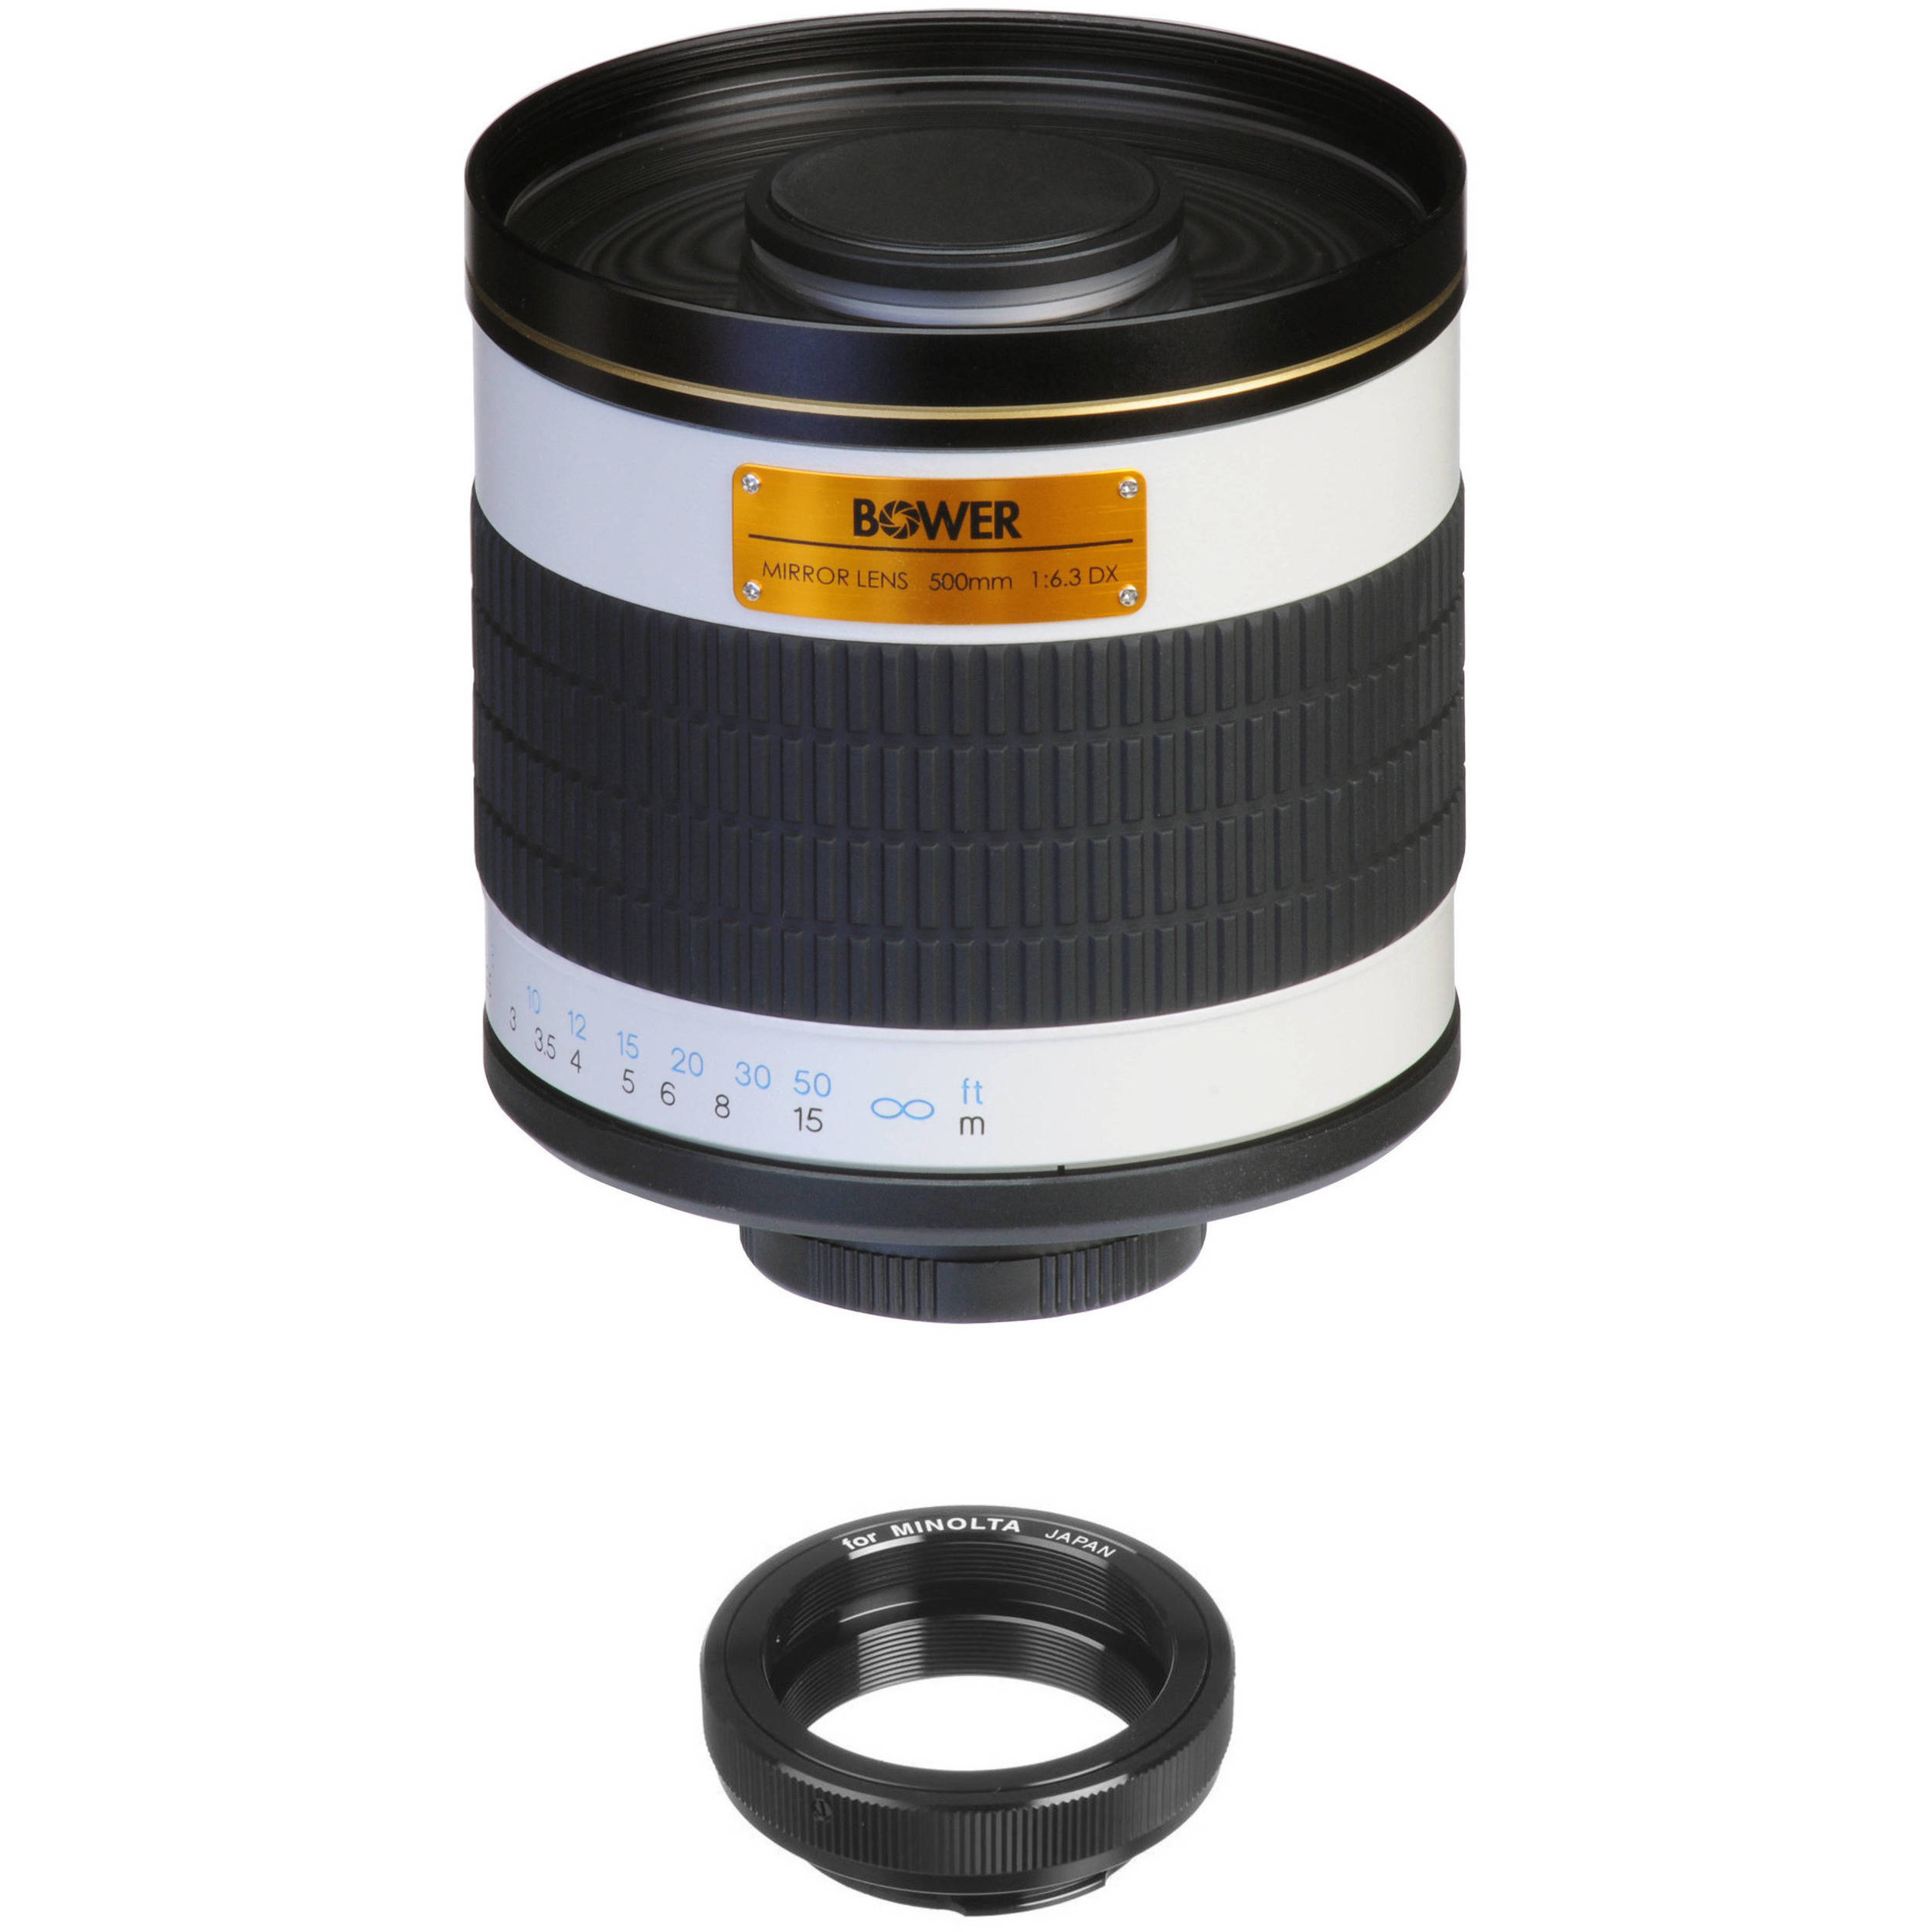 Bower 500mm F 6 3 Manual Focus Telephoto Lens For Minolta